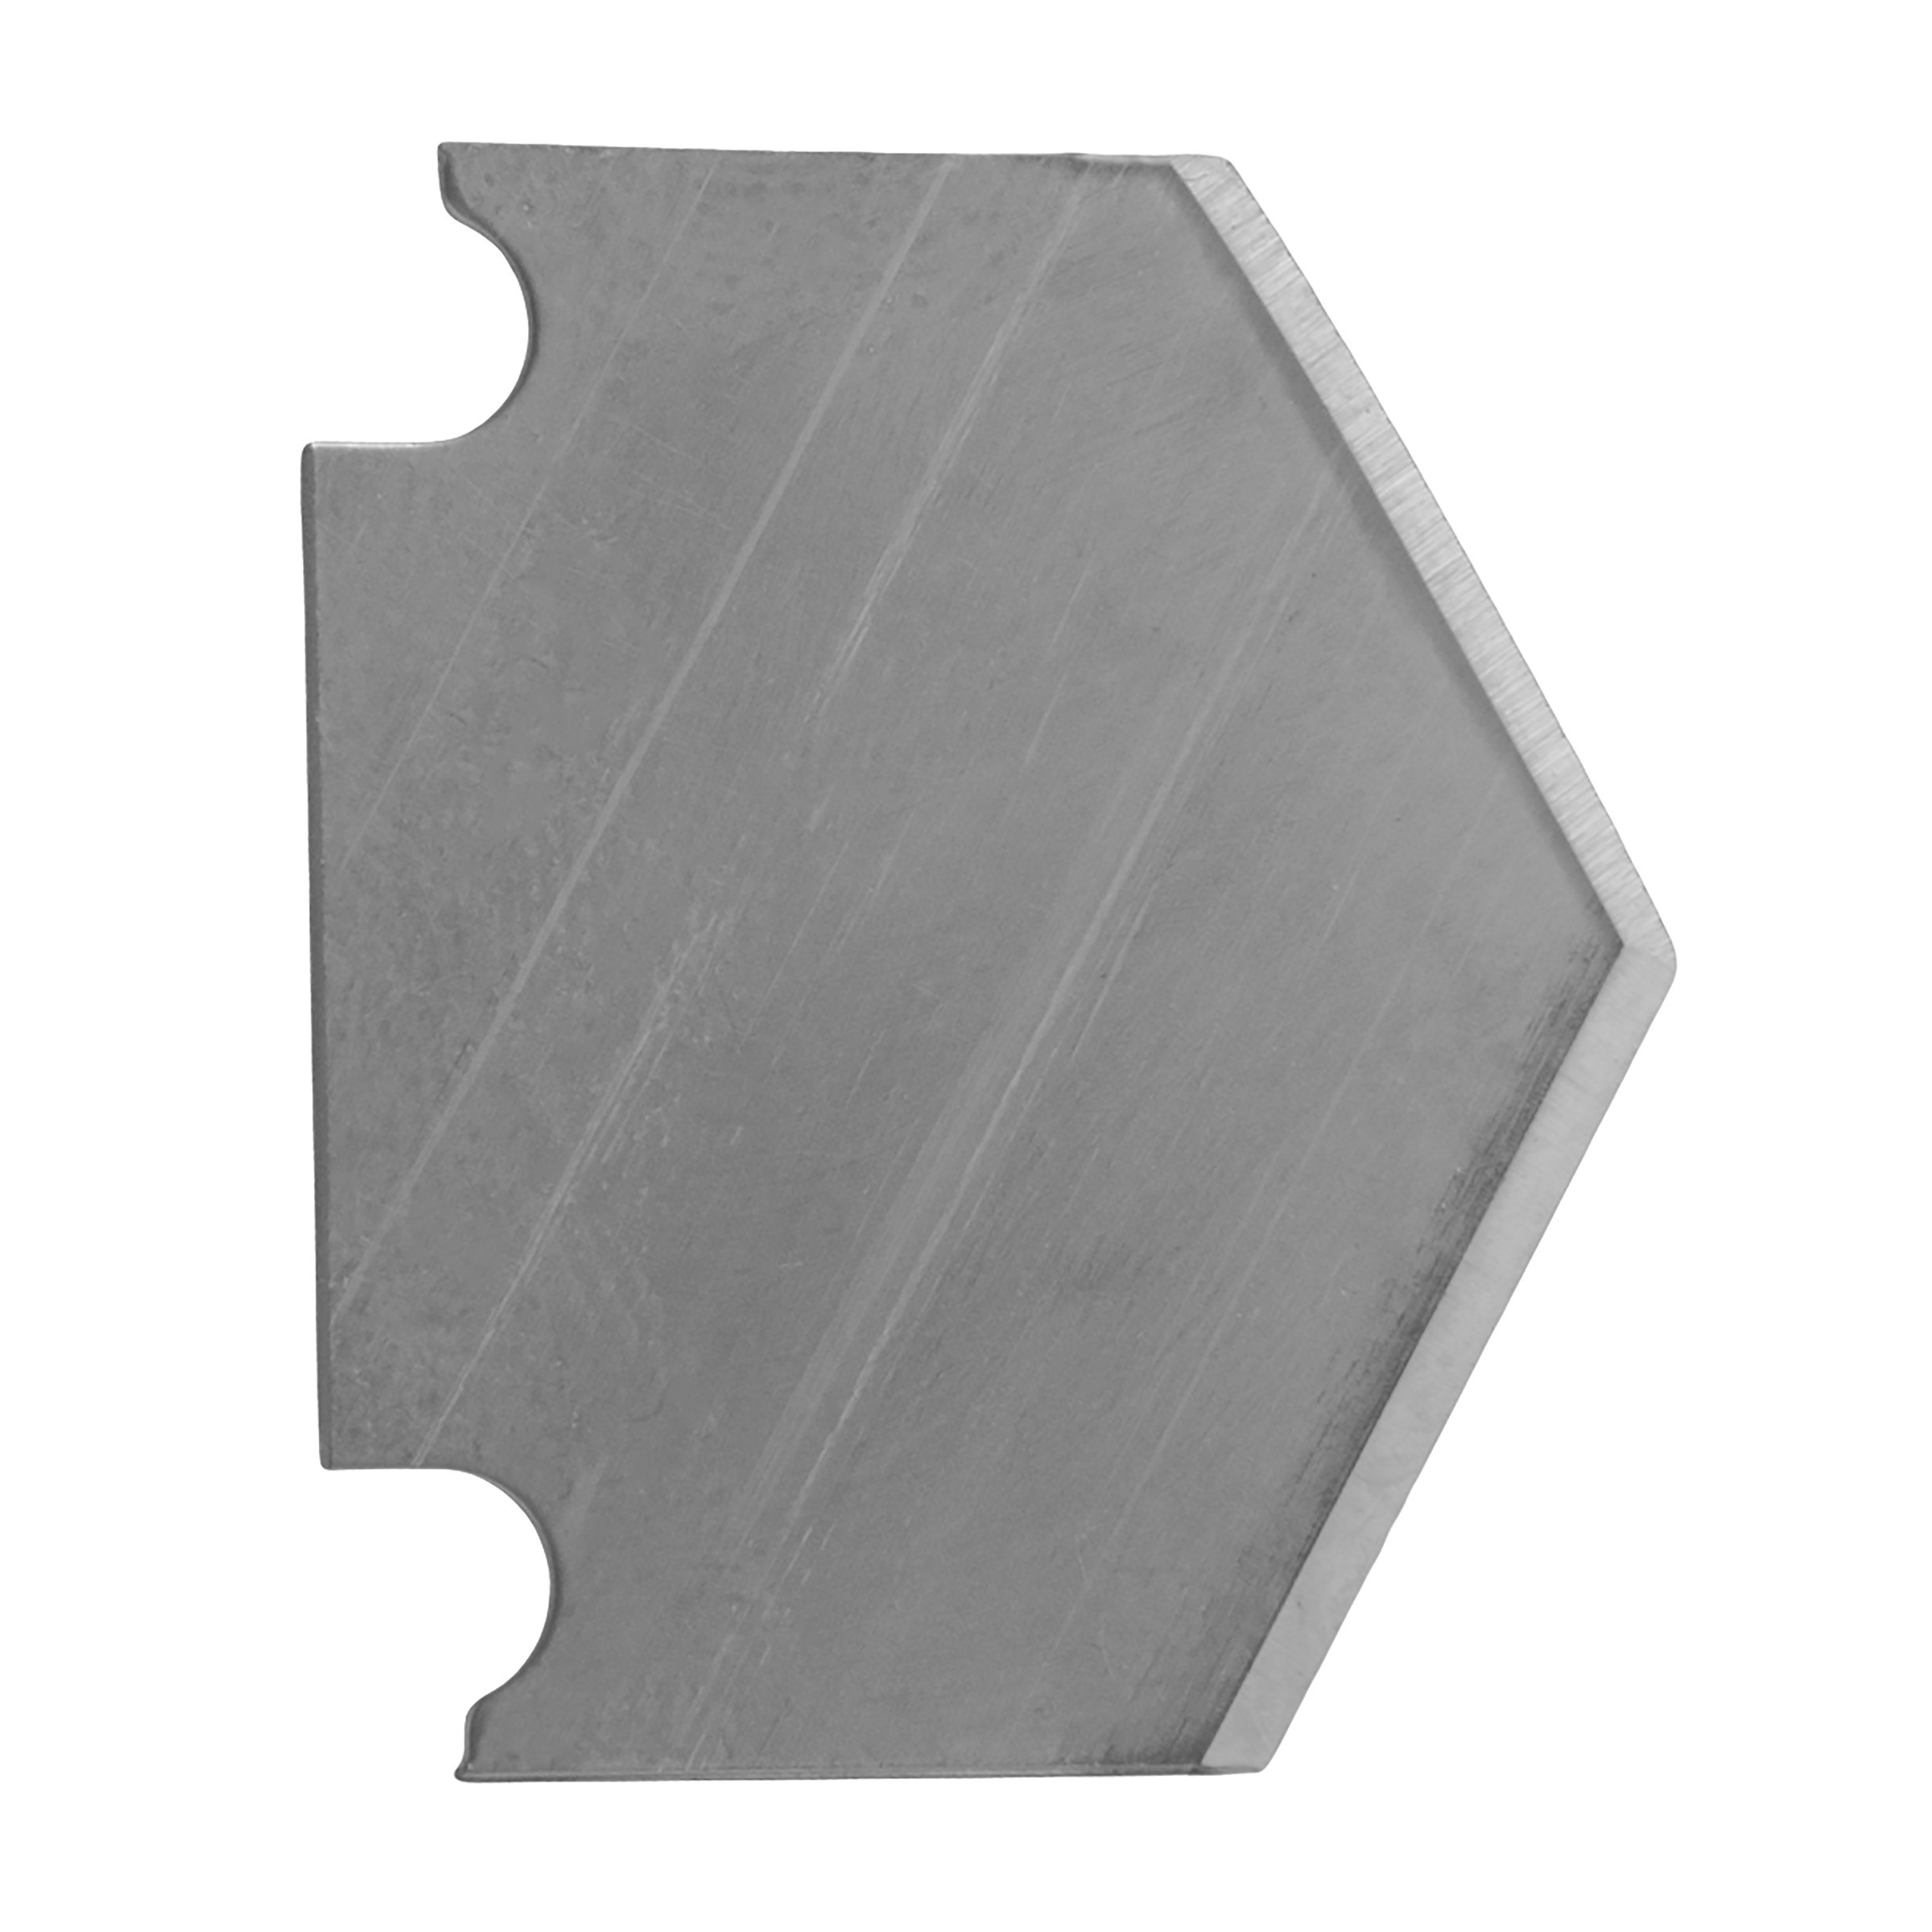 SP Bel-Art Replacement Blade for Plastic Tubing Cutter H21010-0000